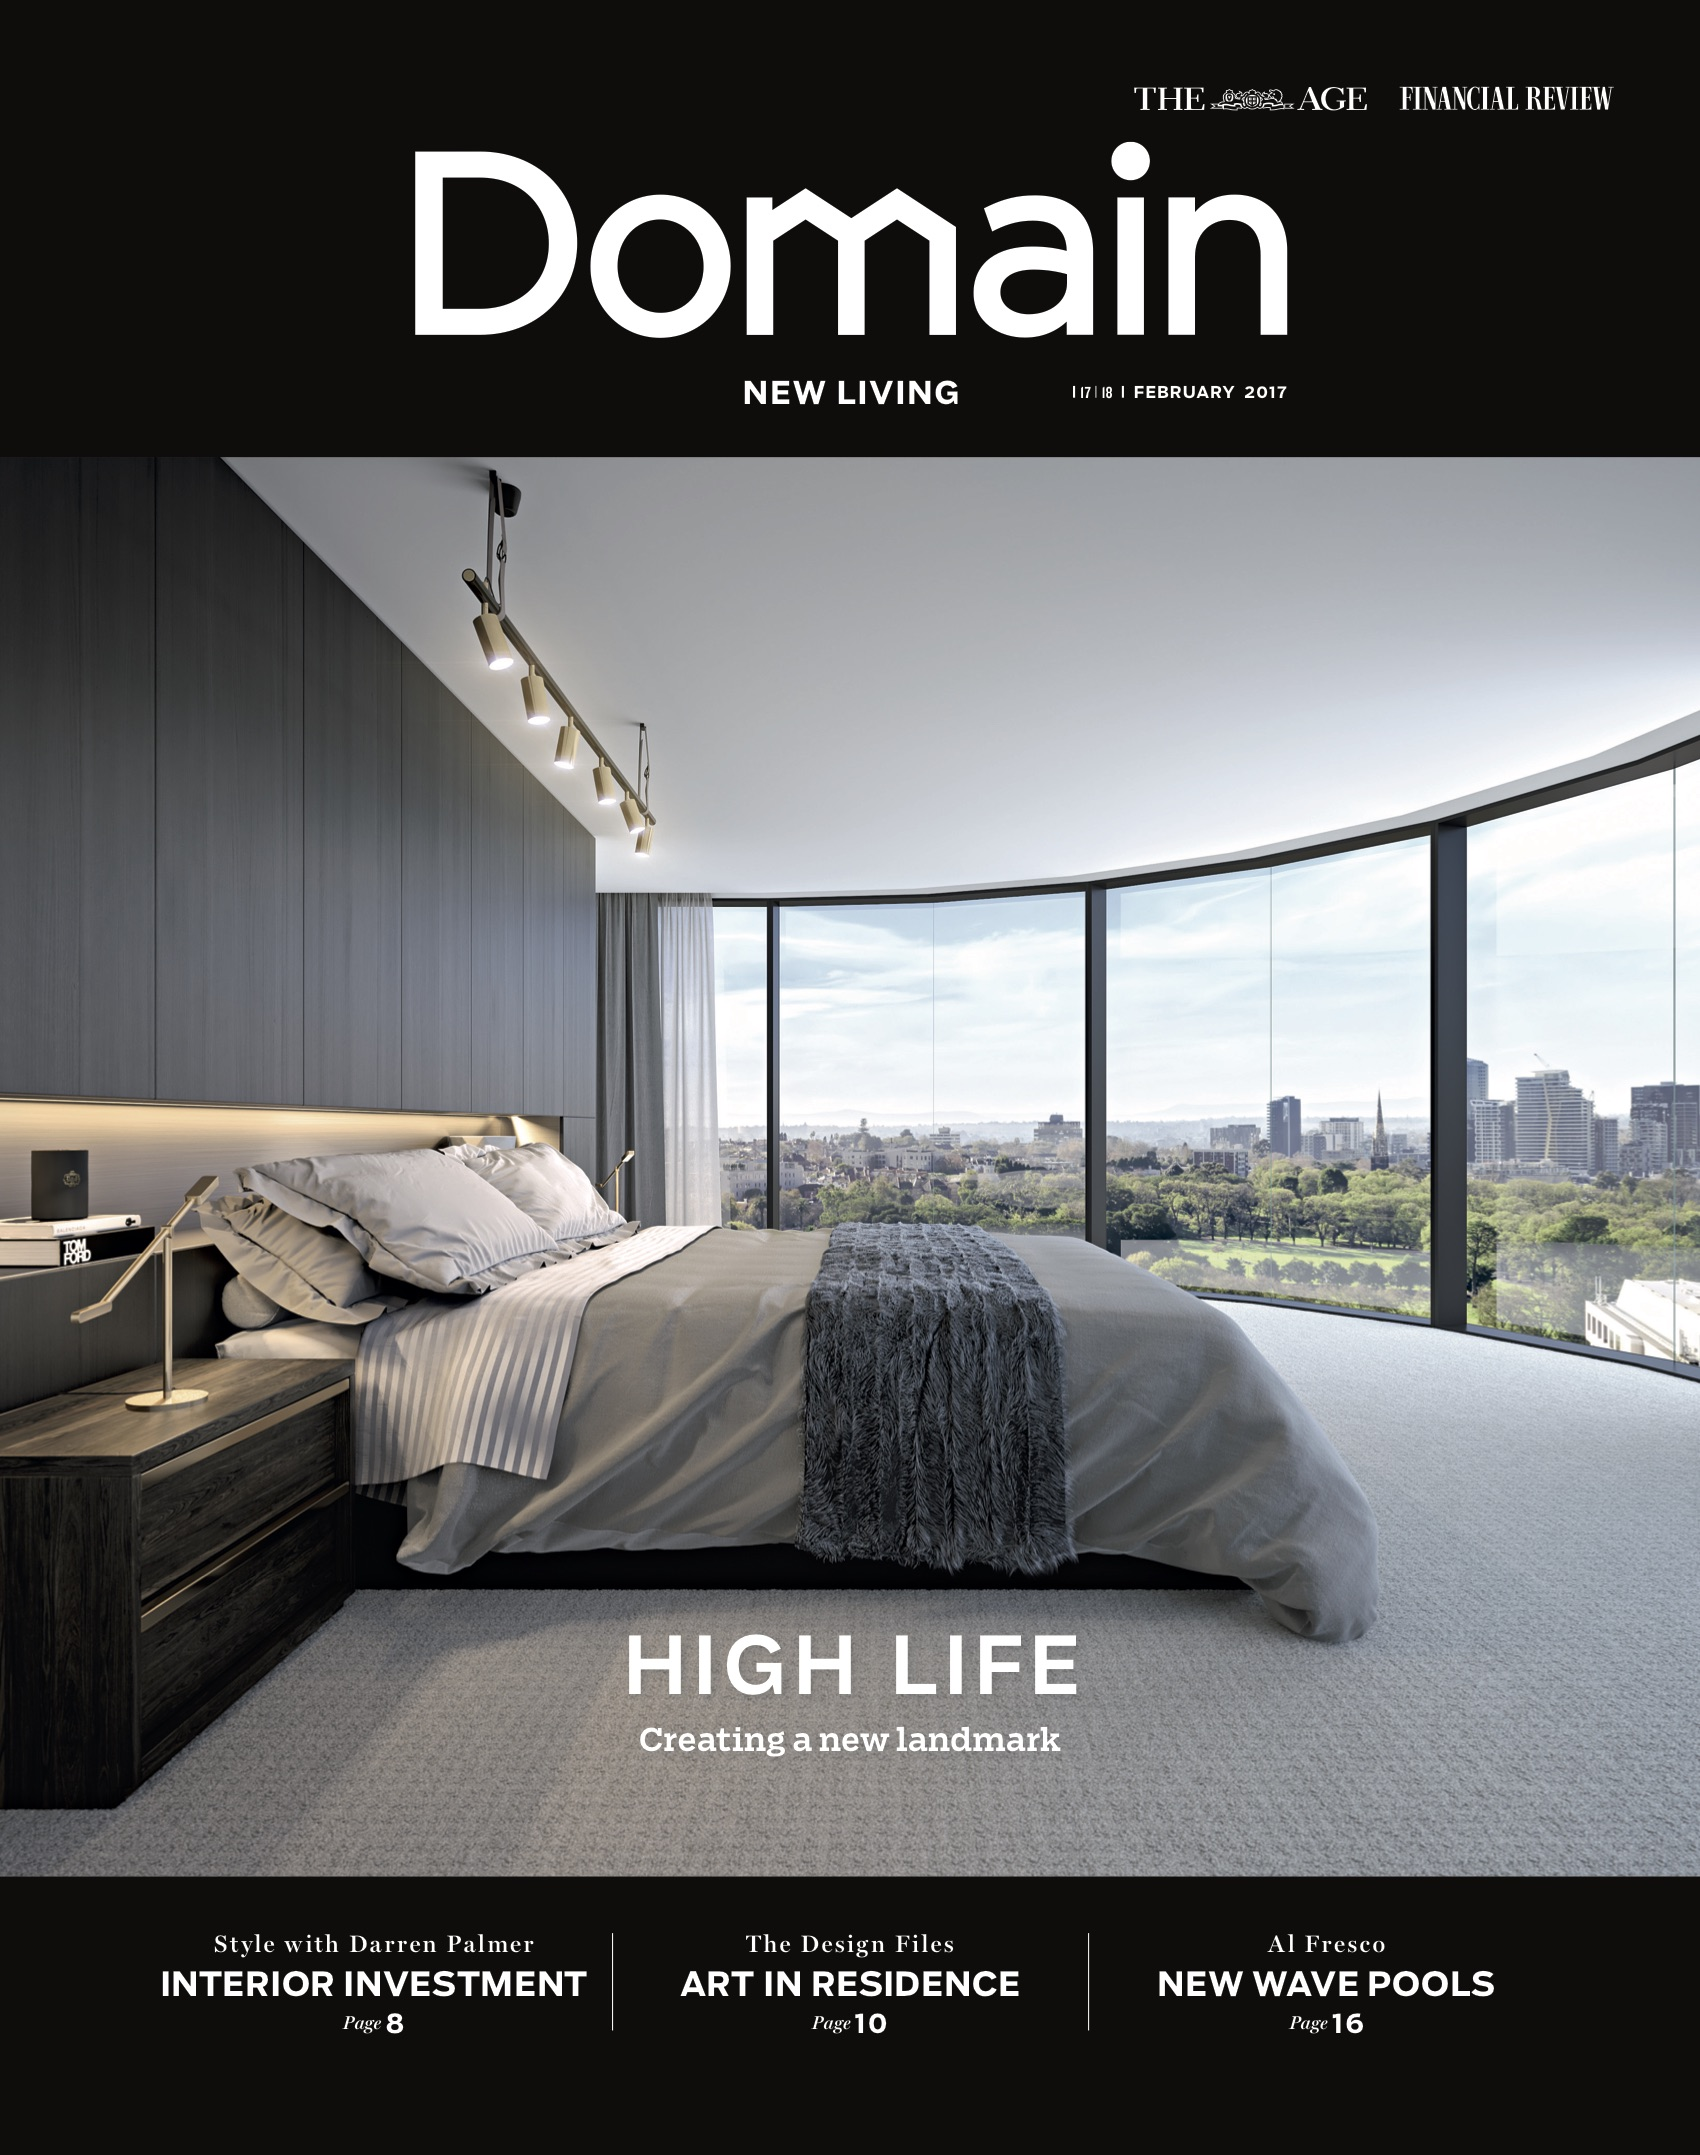 Domain Back Cover - New Living - The Age